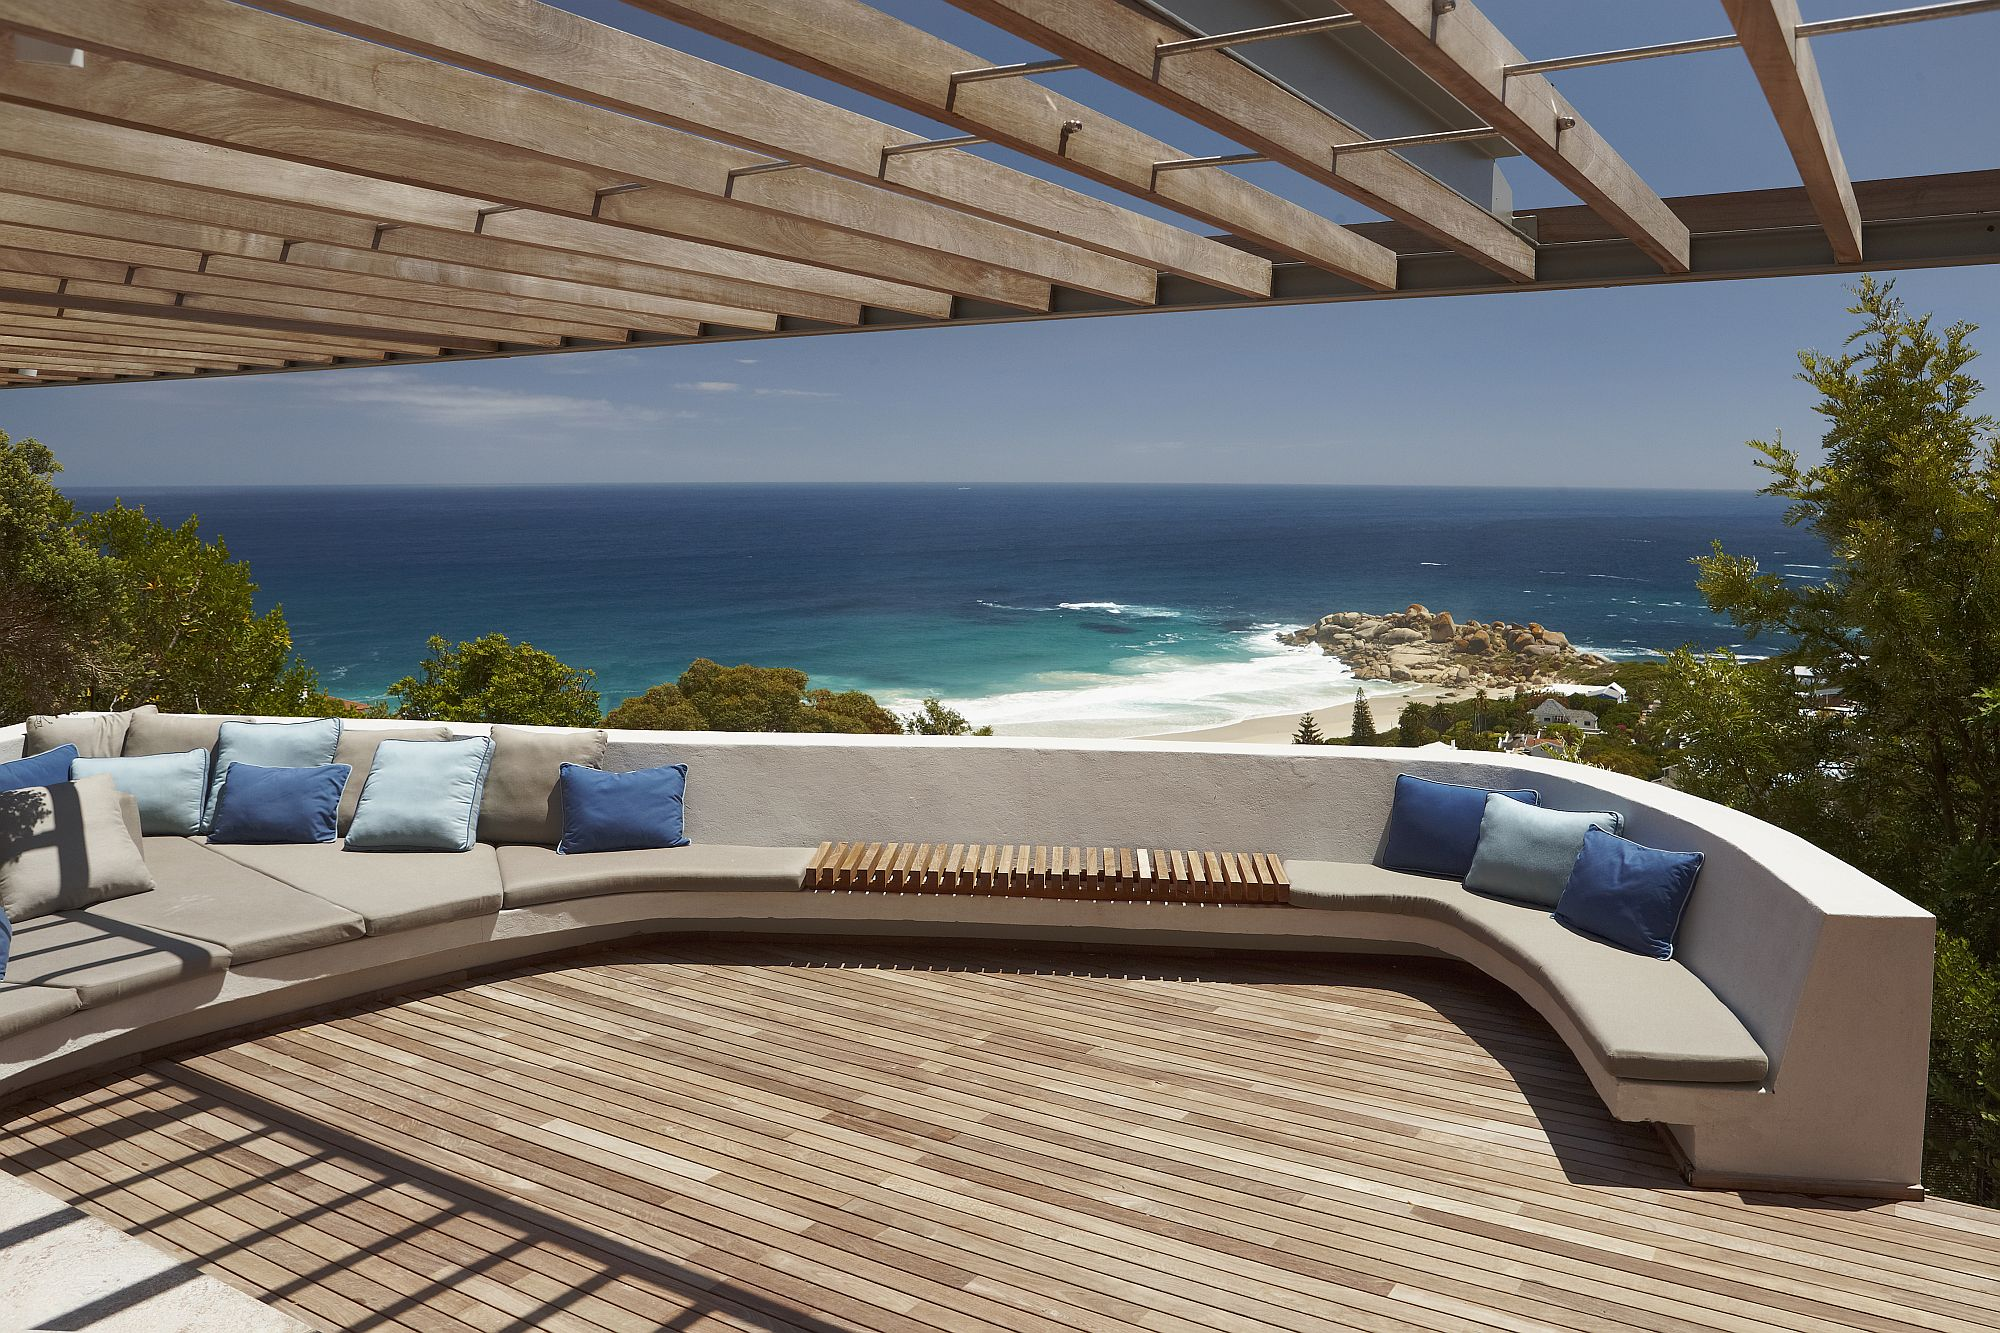 Extravagant-deck-with-sitting-space-that-offers-amazing-ocean-views